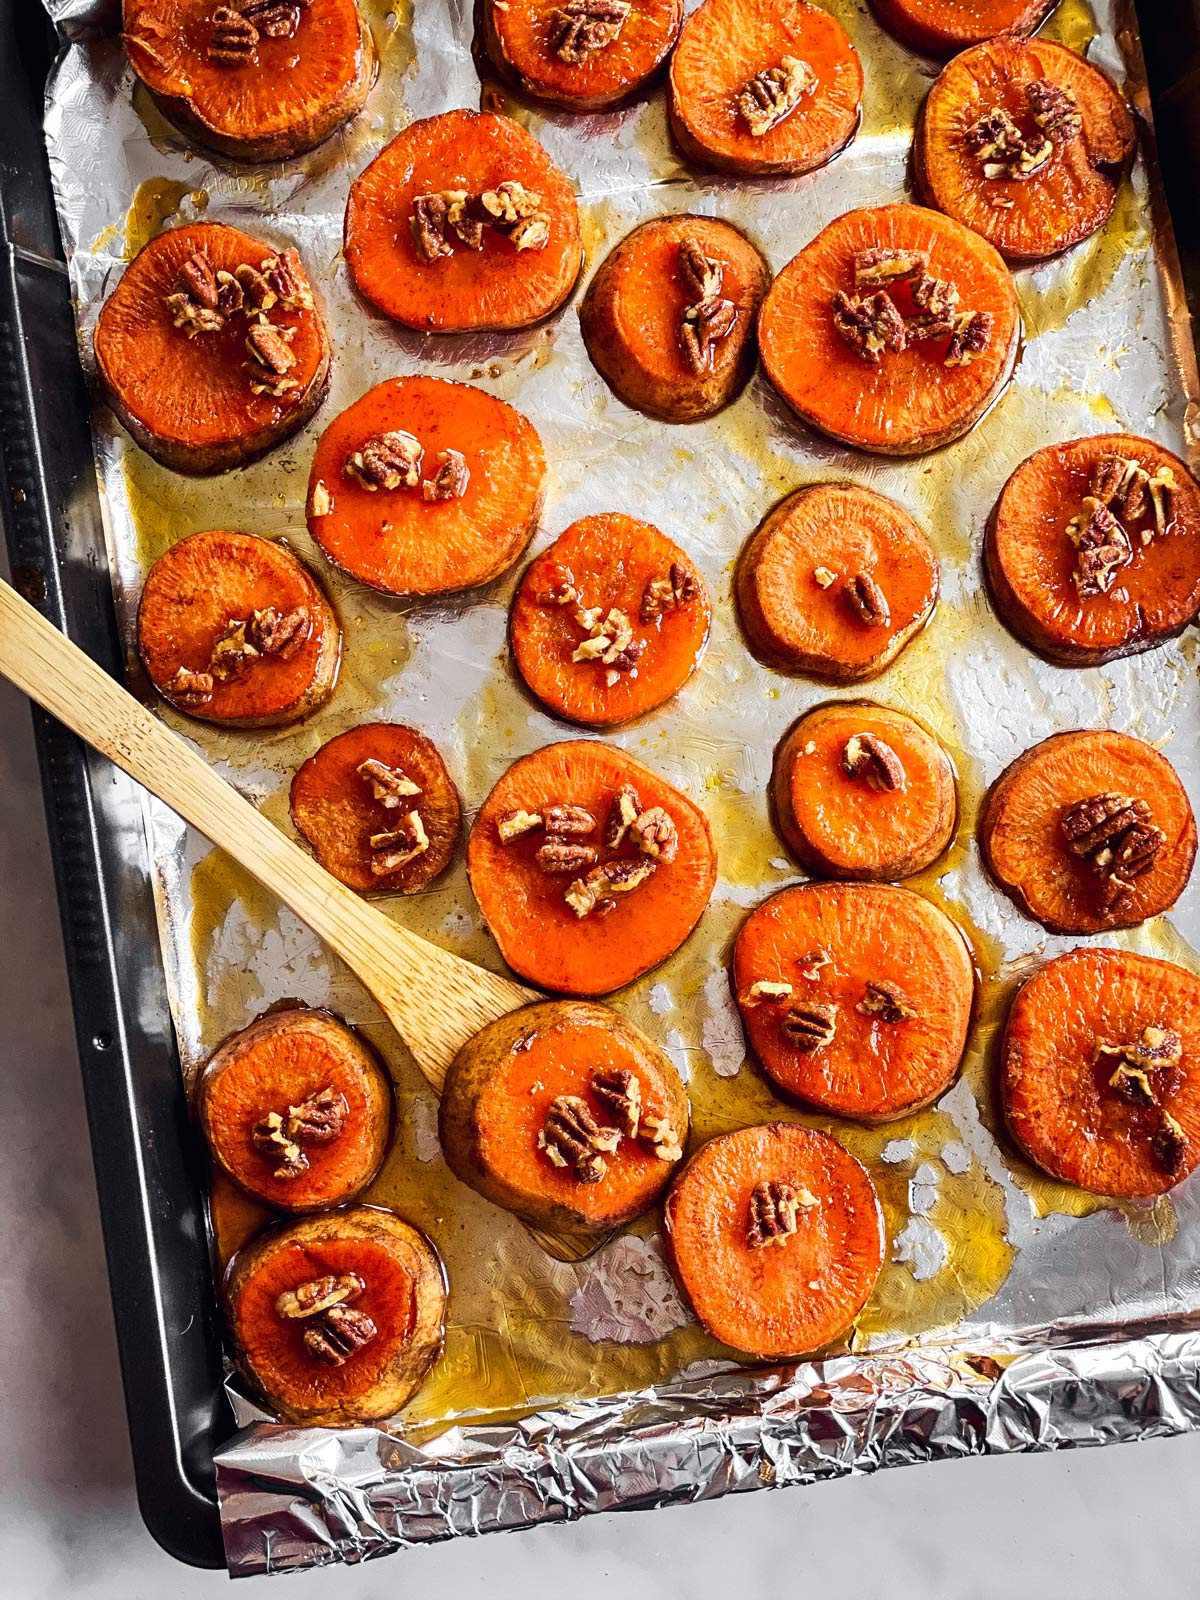 overhead view of baking sheet with baked sweet potato slices